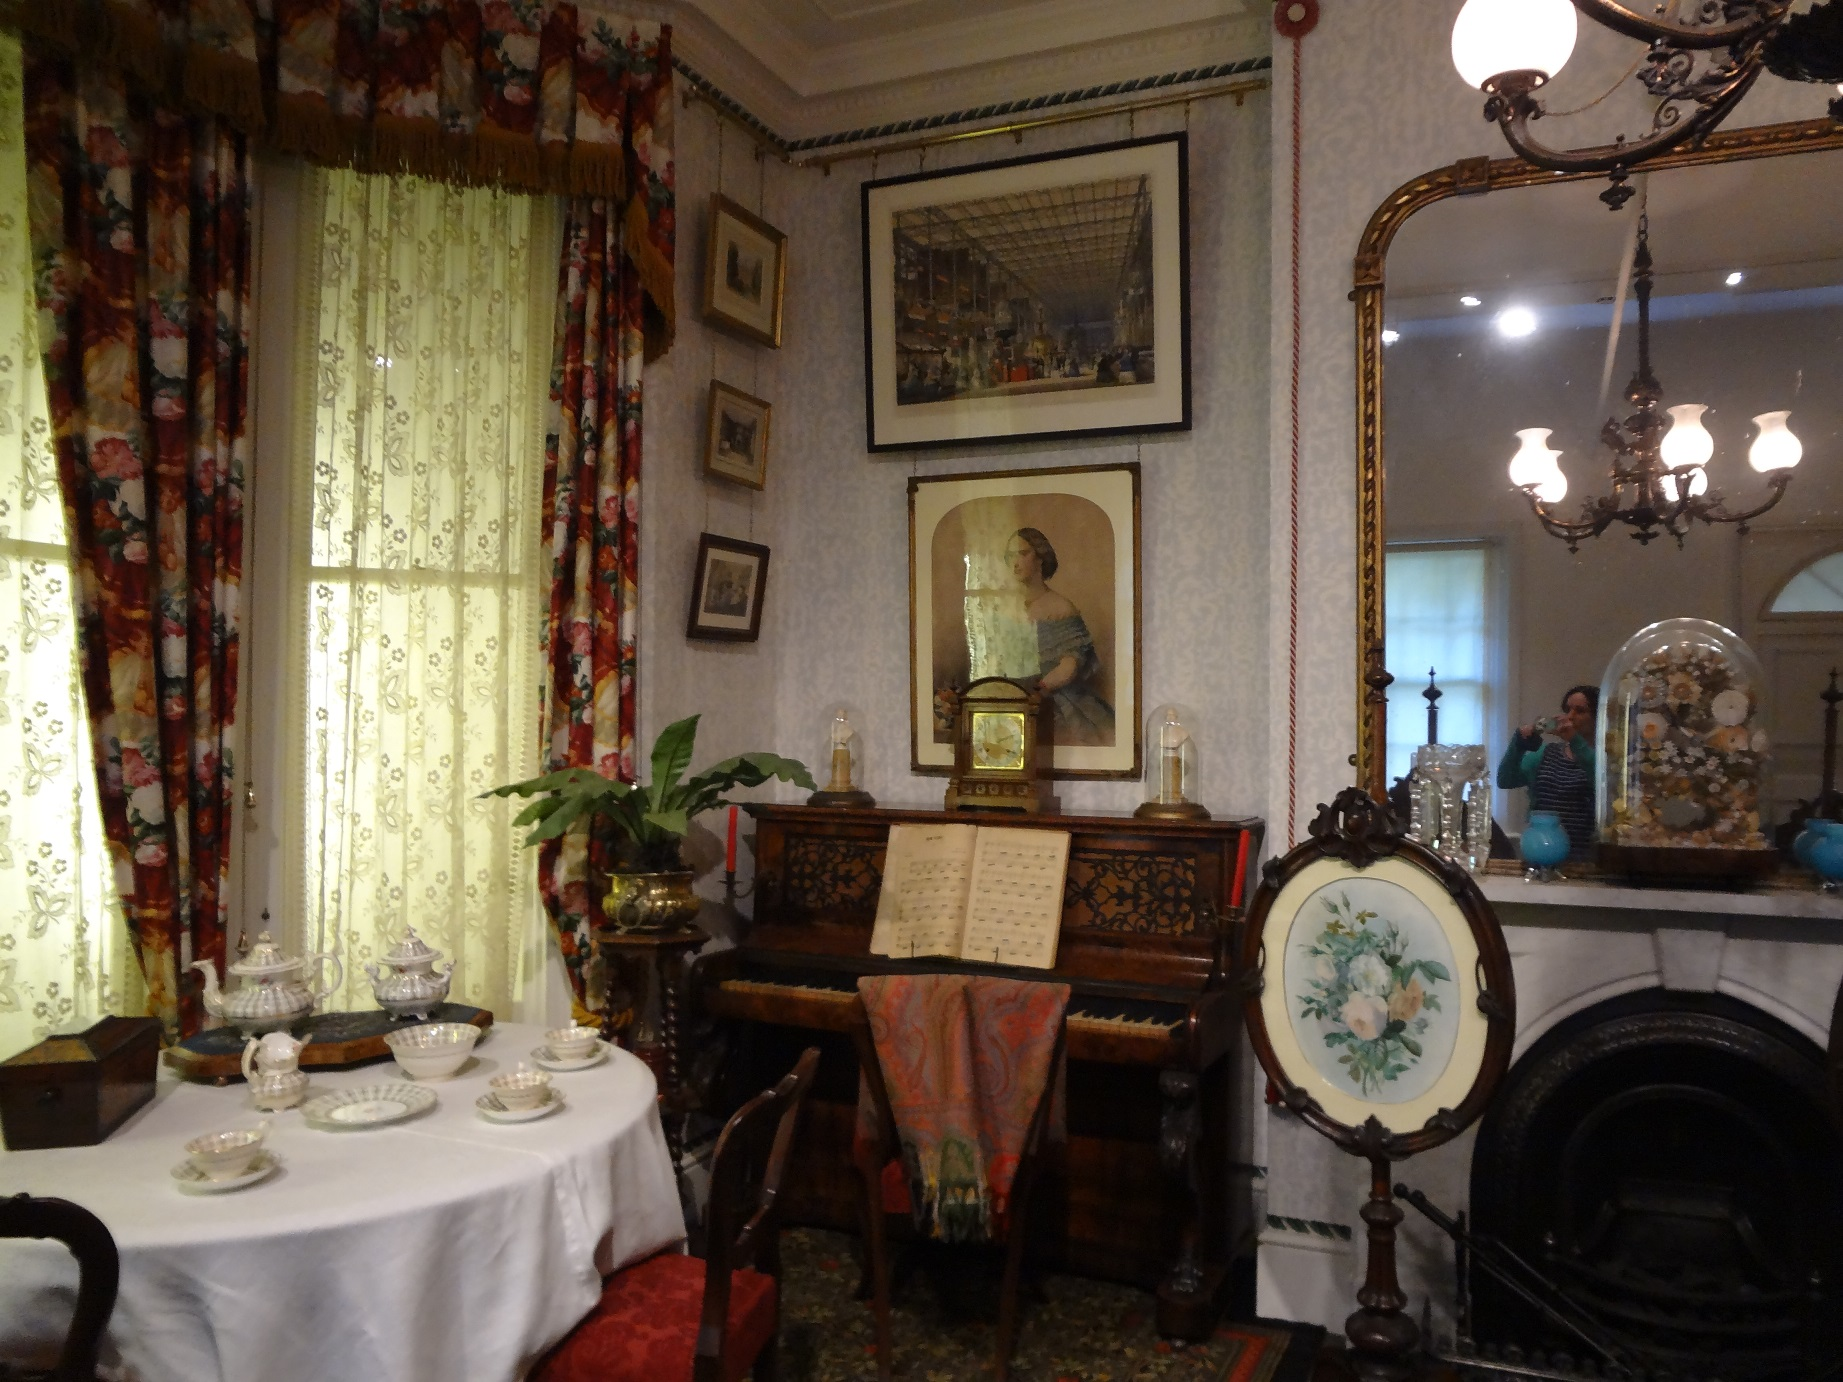 Room in the Geffrye Museum